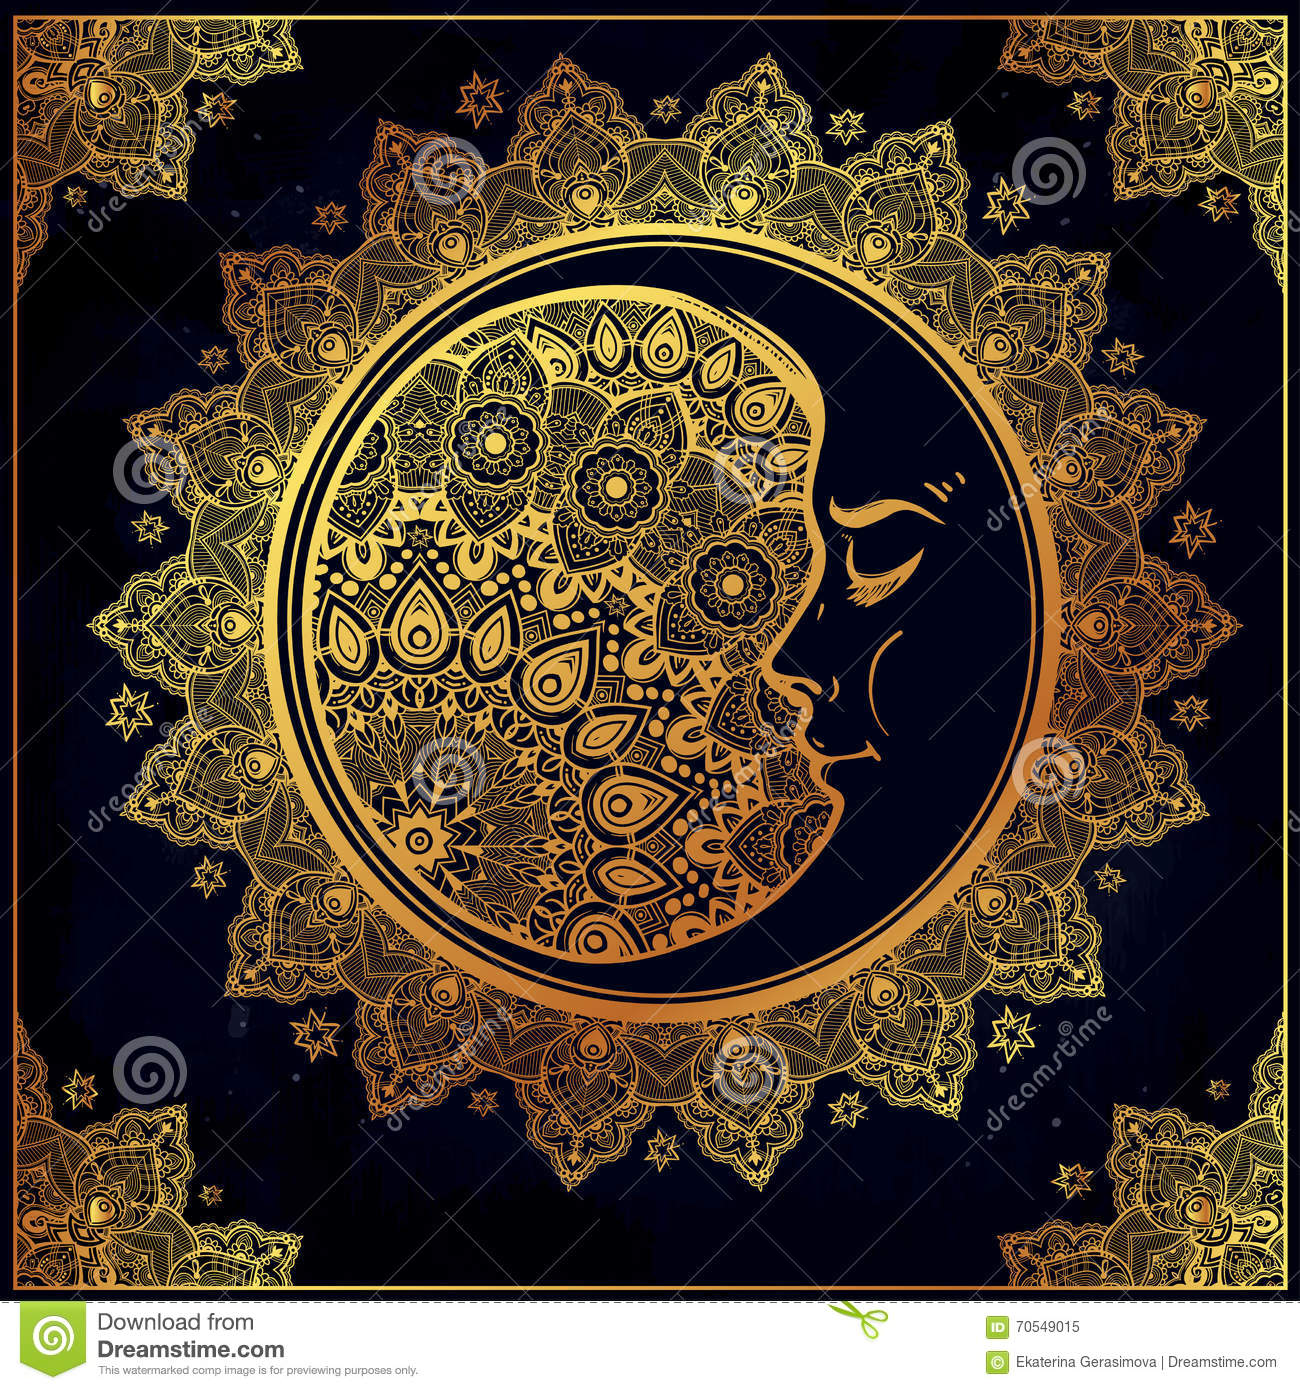 Bohemian Ornate Vector Crescent Moon. Stock Vector - Image: 70549015